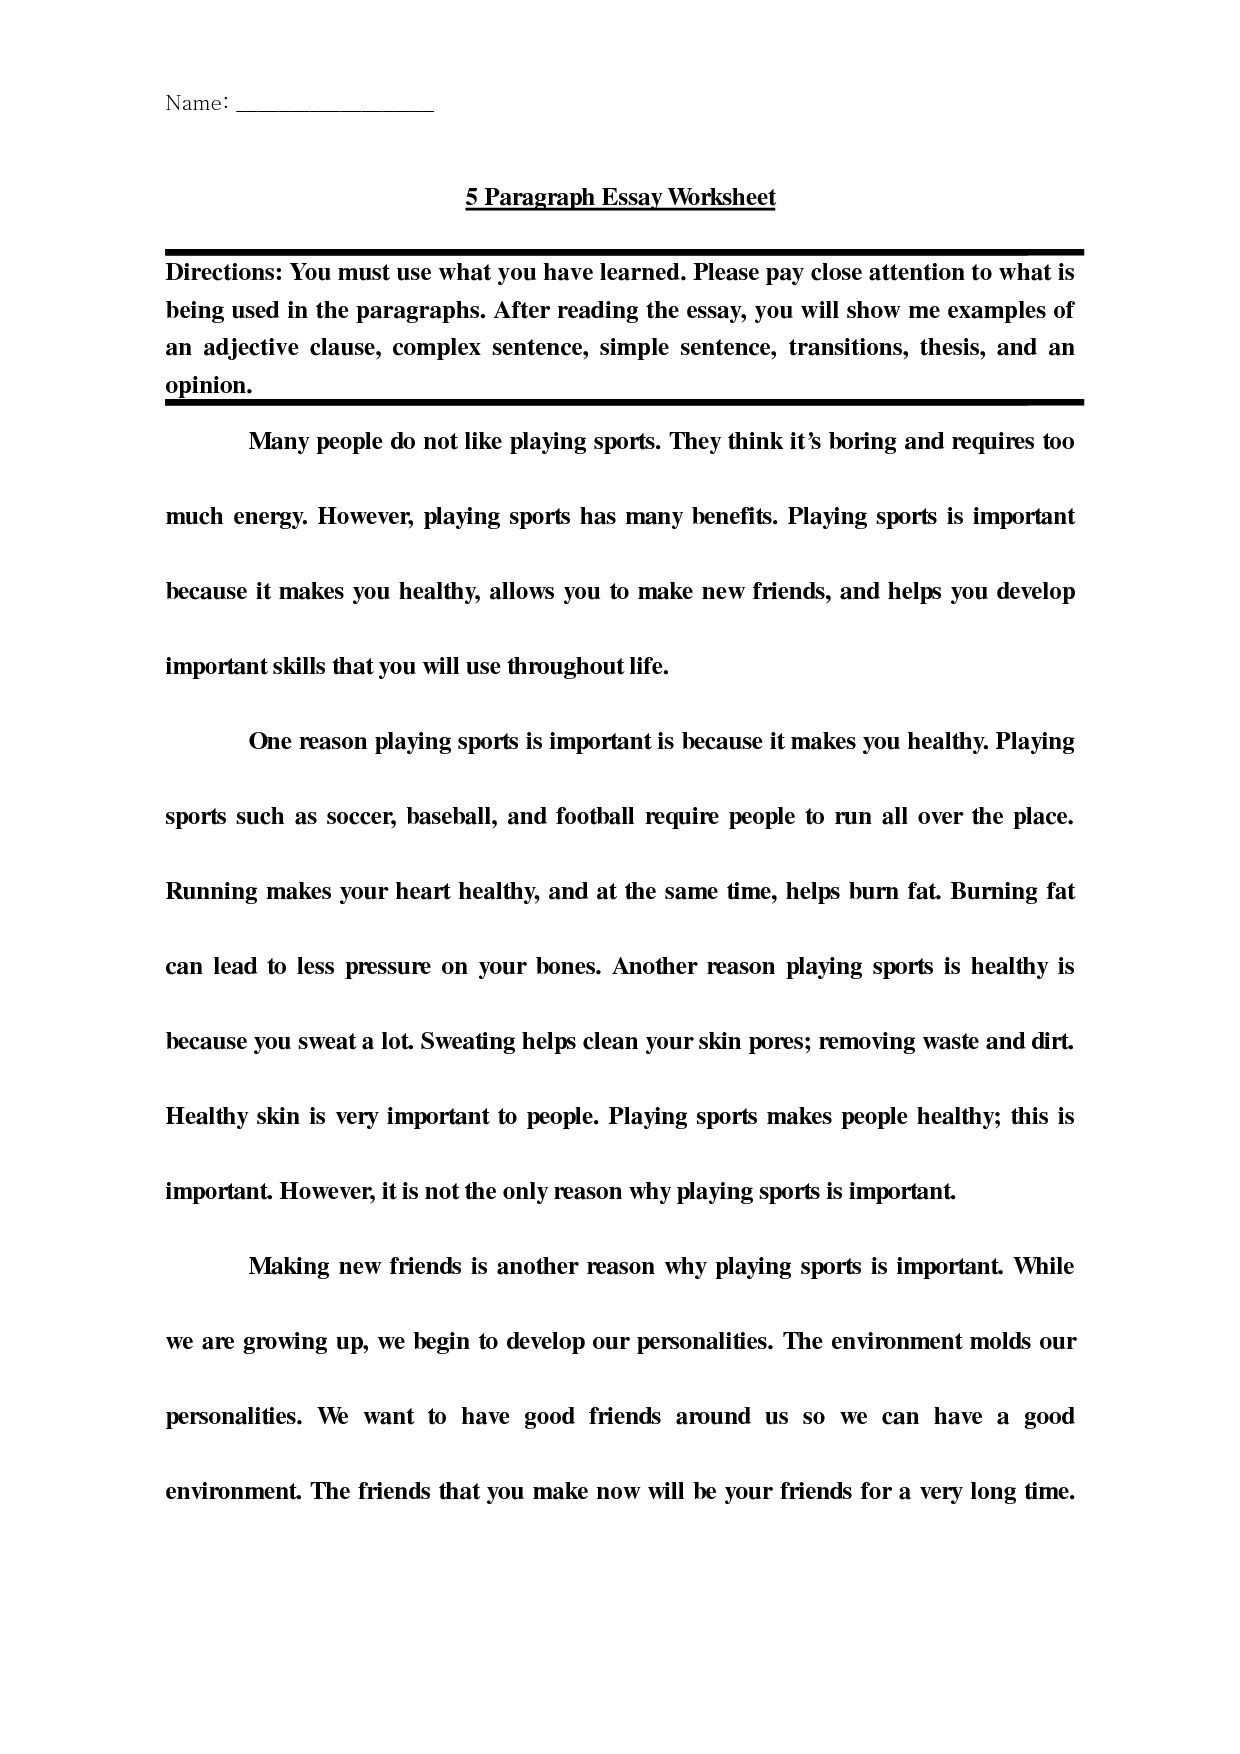 High School Essay Writing Worksheets Post Introduction Paragraph Worksheet